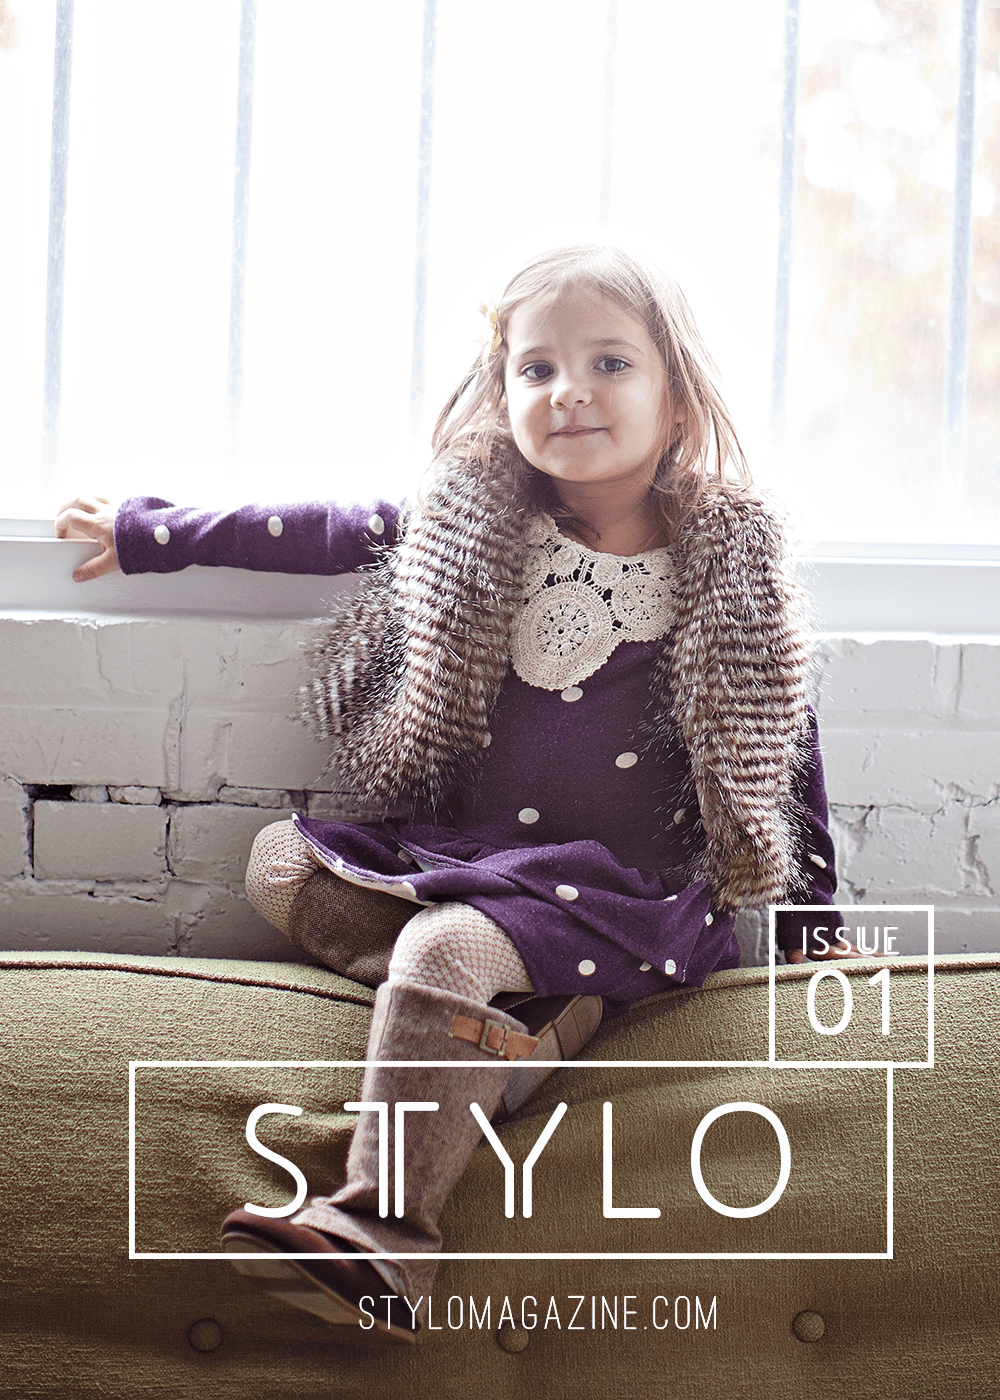 stylo  modern kids sewing pattern magazine  the sewing rabbit - stylo  brand new modern kids sewing pattern magazine